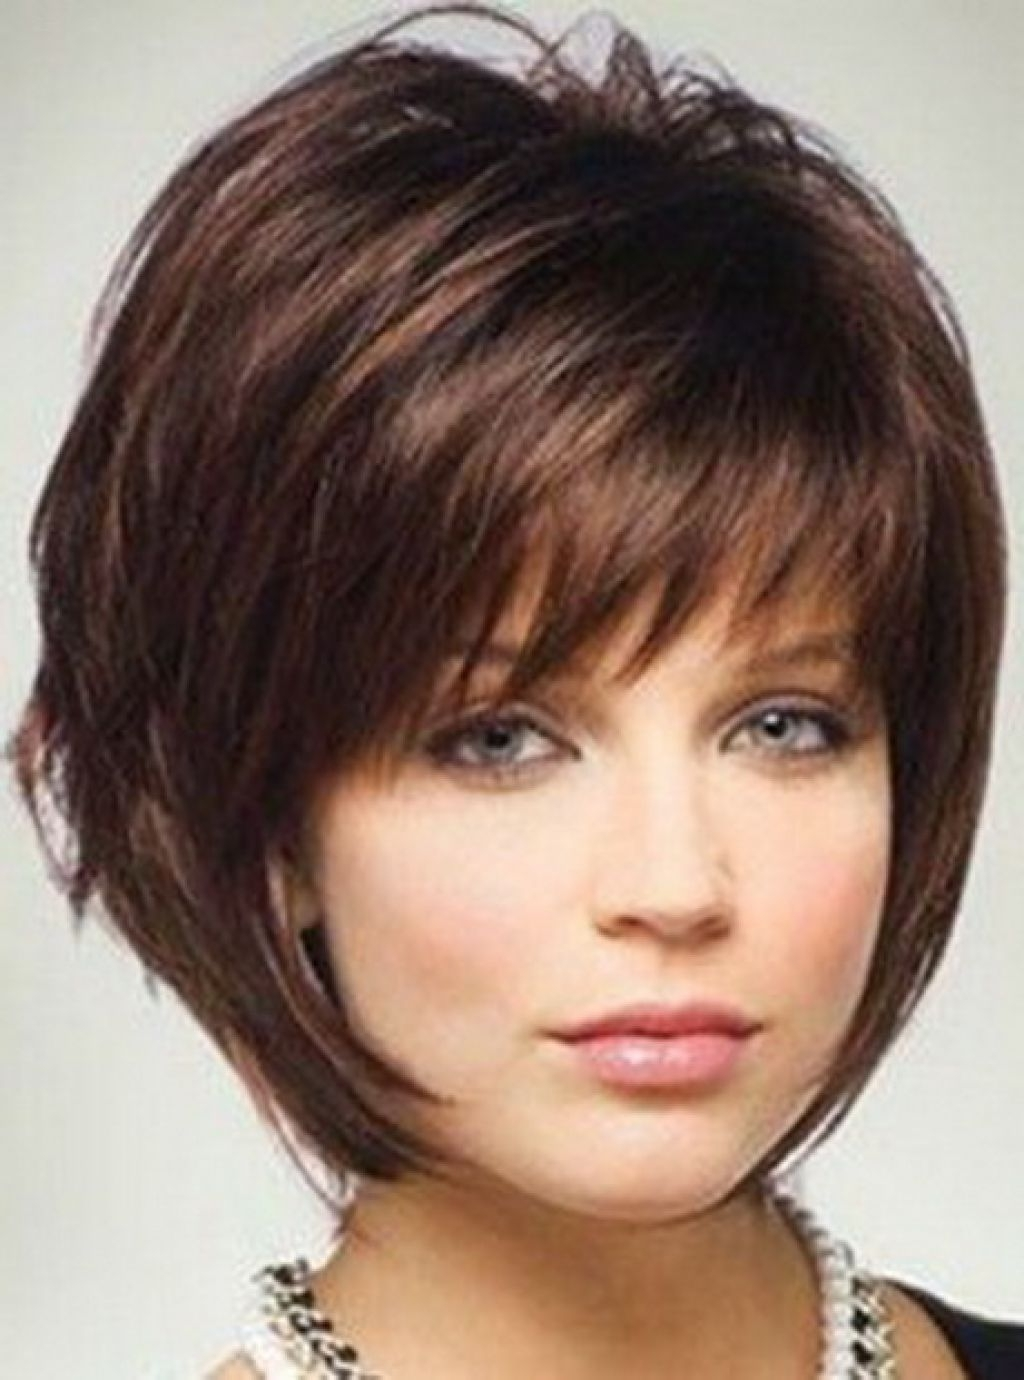 Short Shaggy Hairstyles With Bangs – Hairstyle For Women & Man Within Best And Newest Shaggy Hairstyles With Bangs (View 11 of 15)